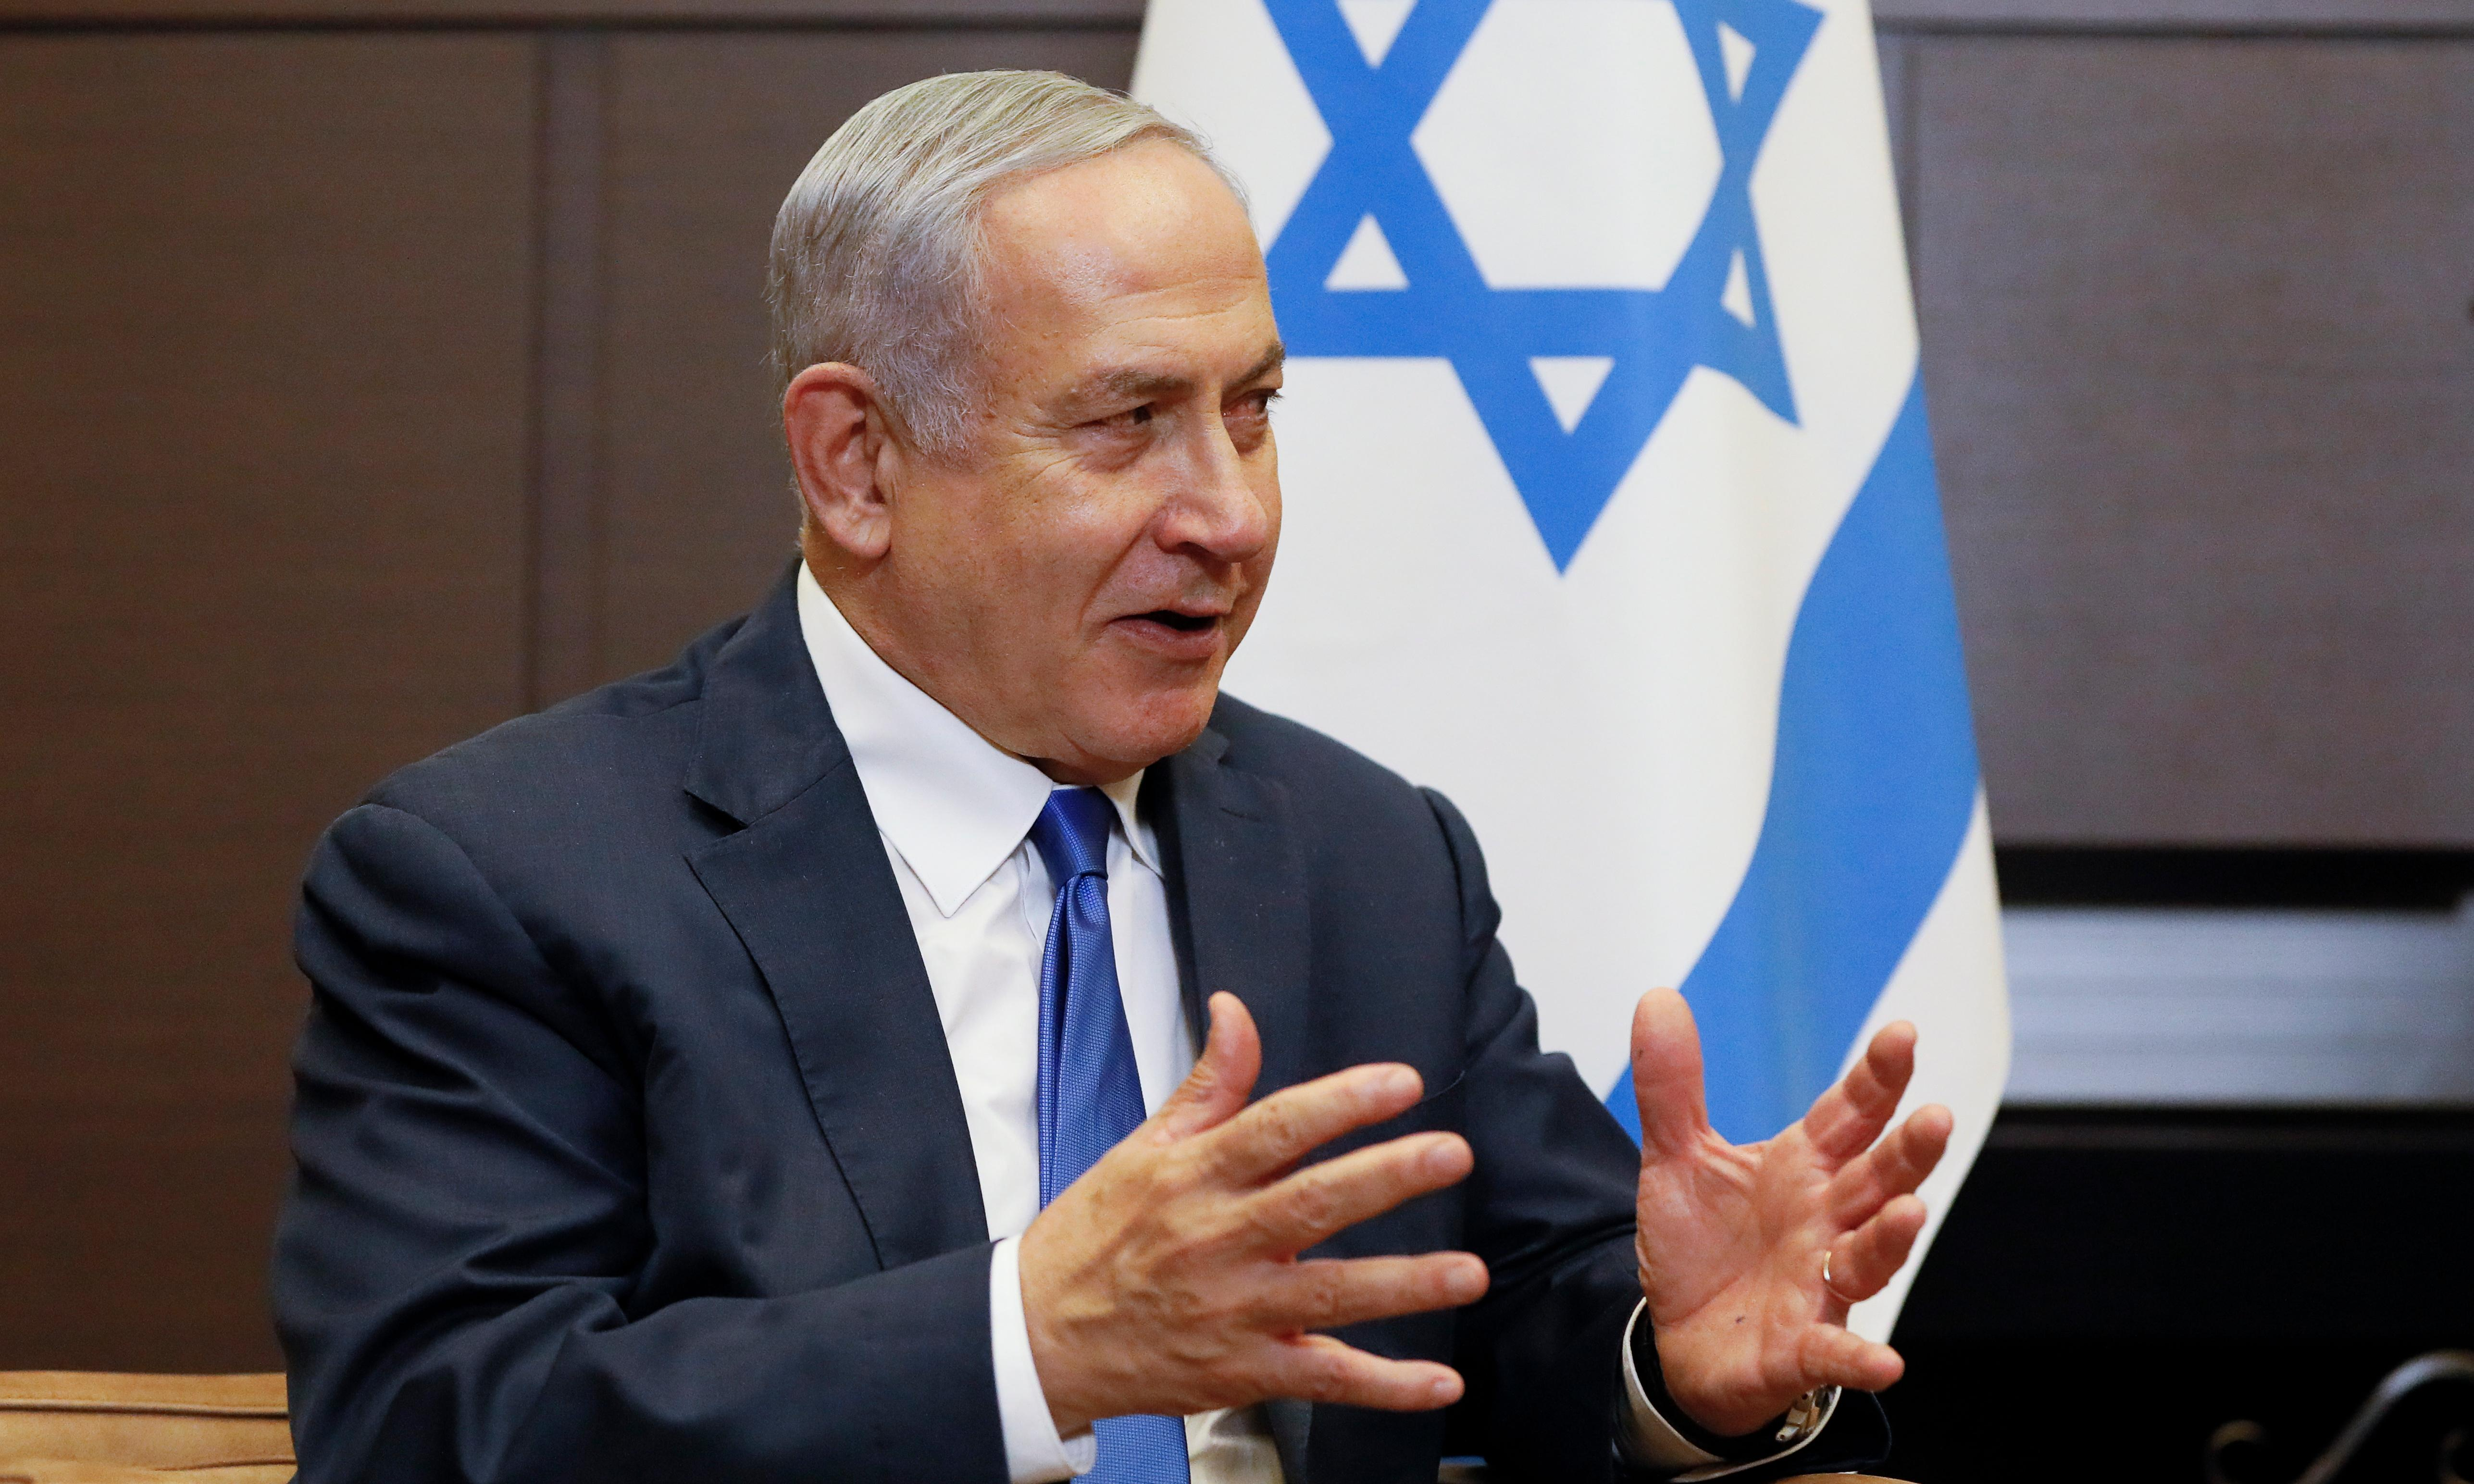 EU leaders must get tough with Israel